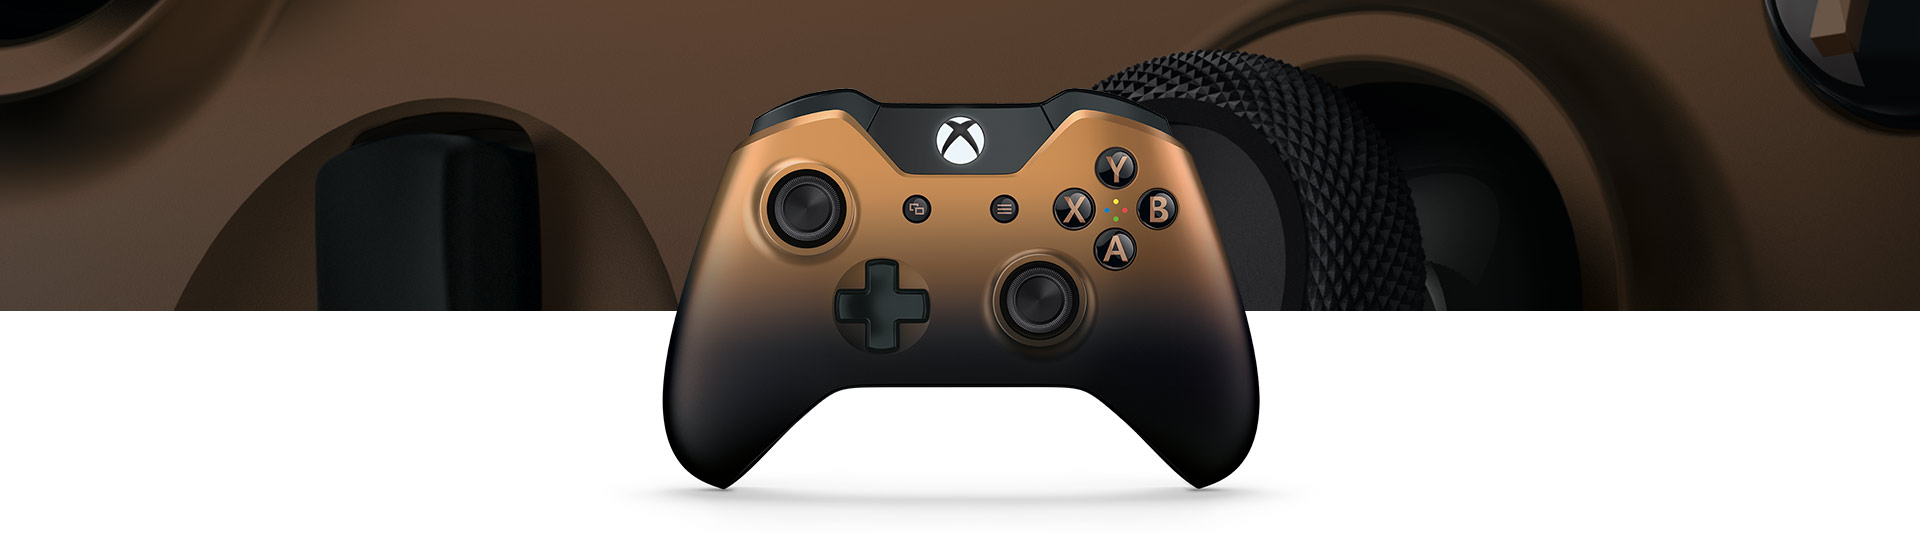 Xbox One Copper Shadow 特別版無線控制器